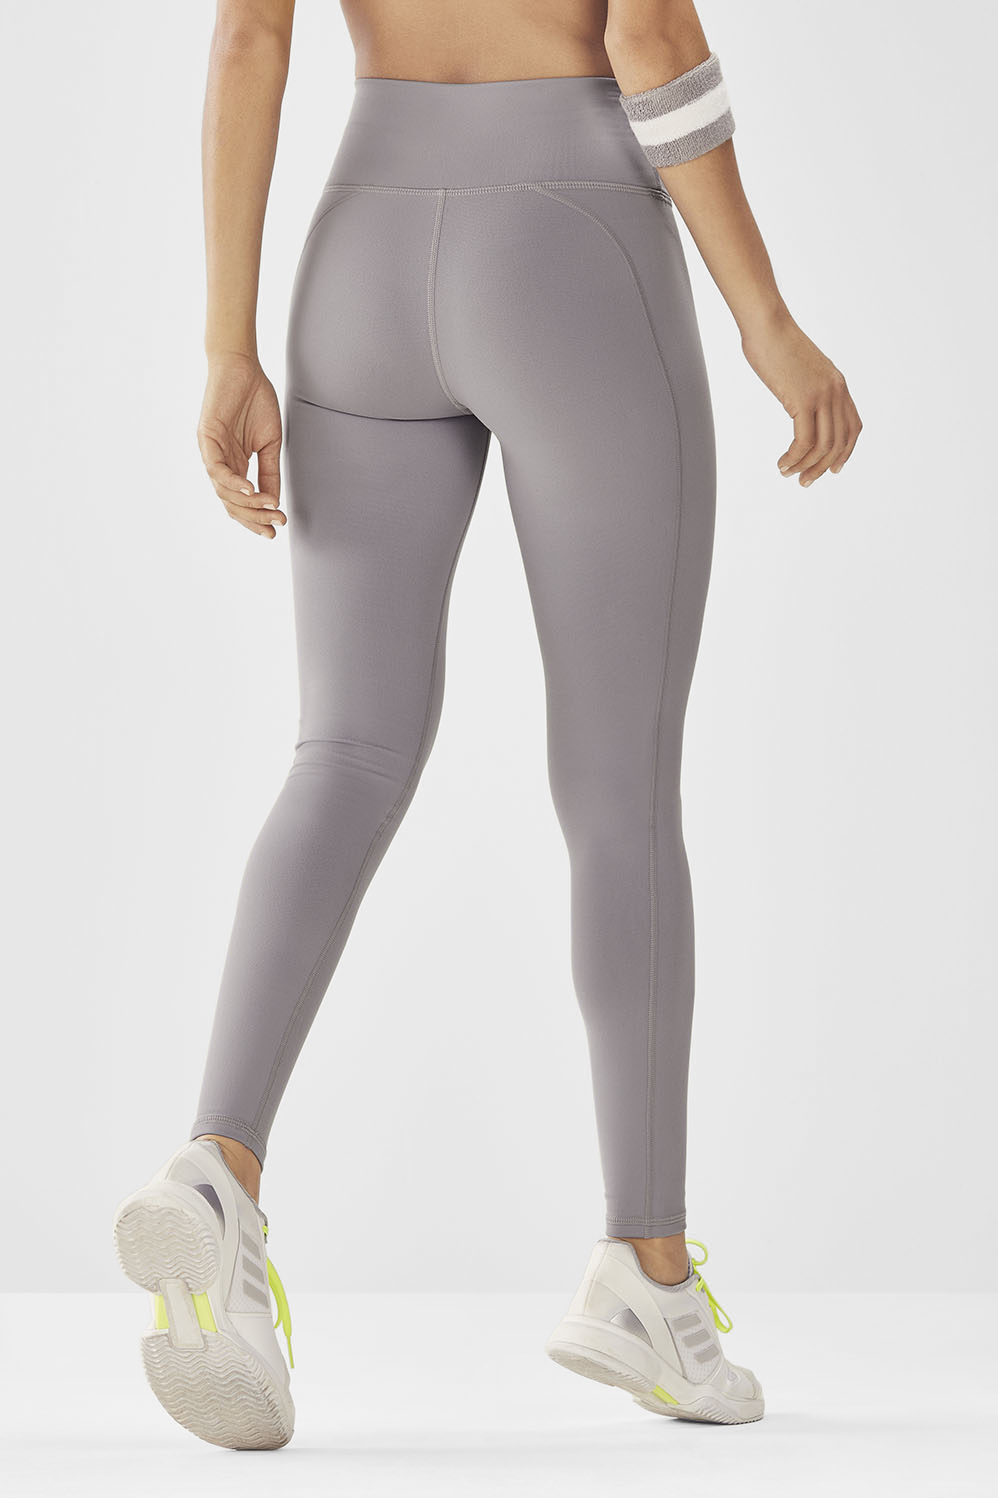 49a689e3c High-Waisted Solid PowerHold® Legging - Fabletics